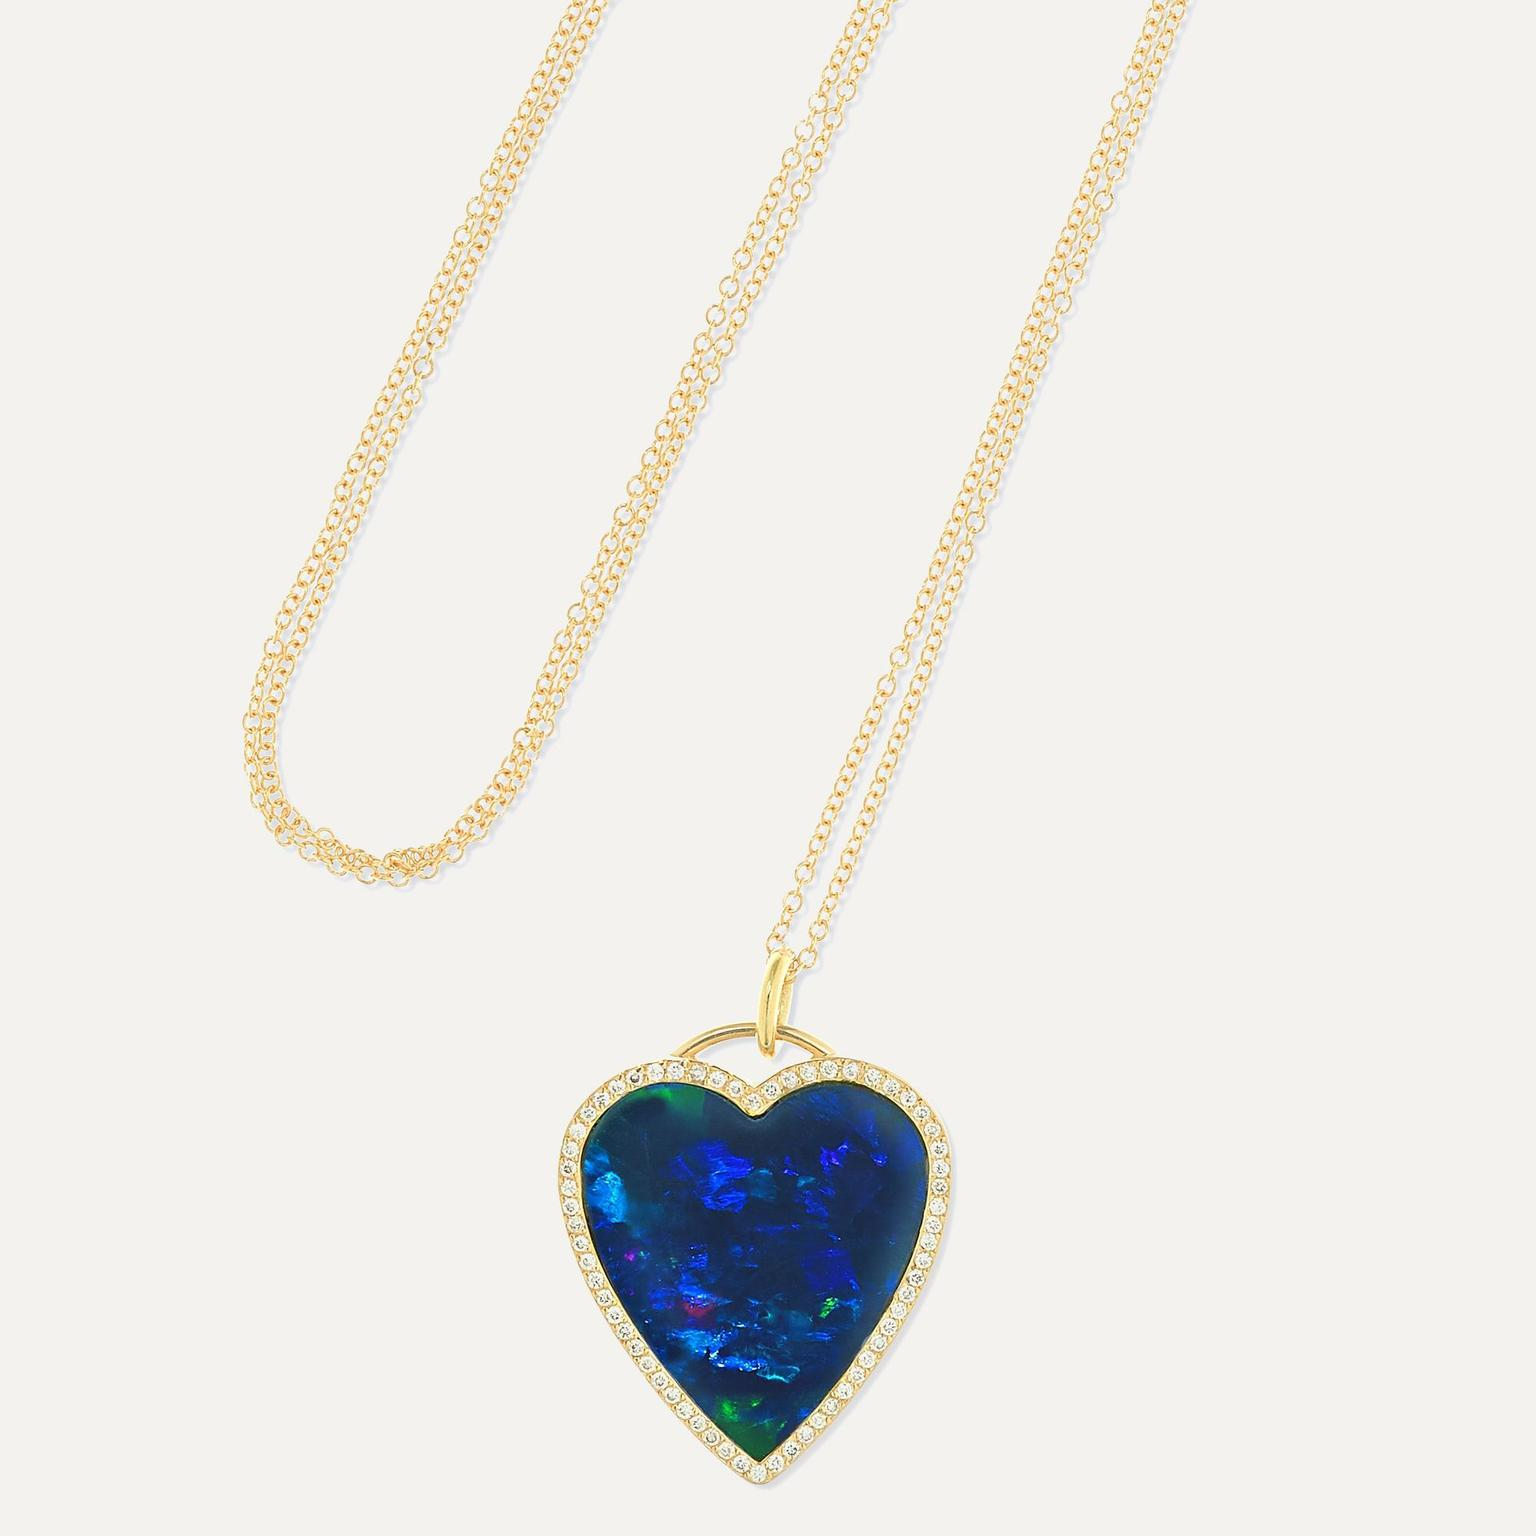 Heart opal necklace by Jennifer Meyer